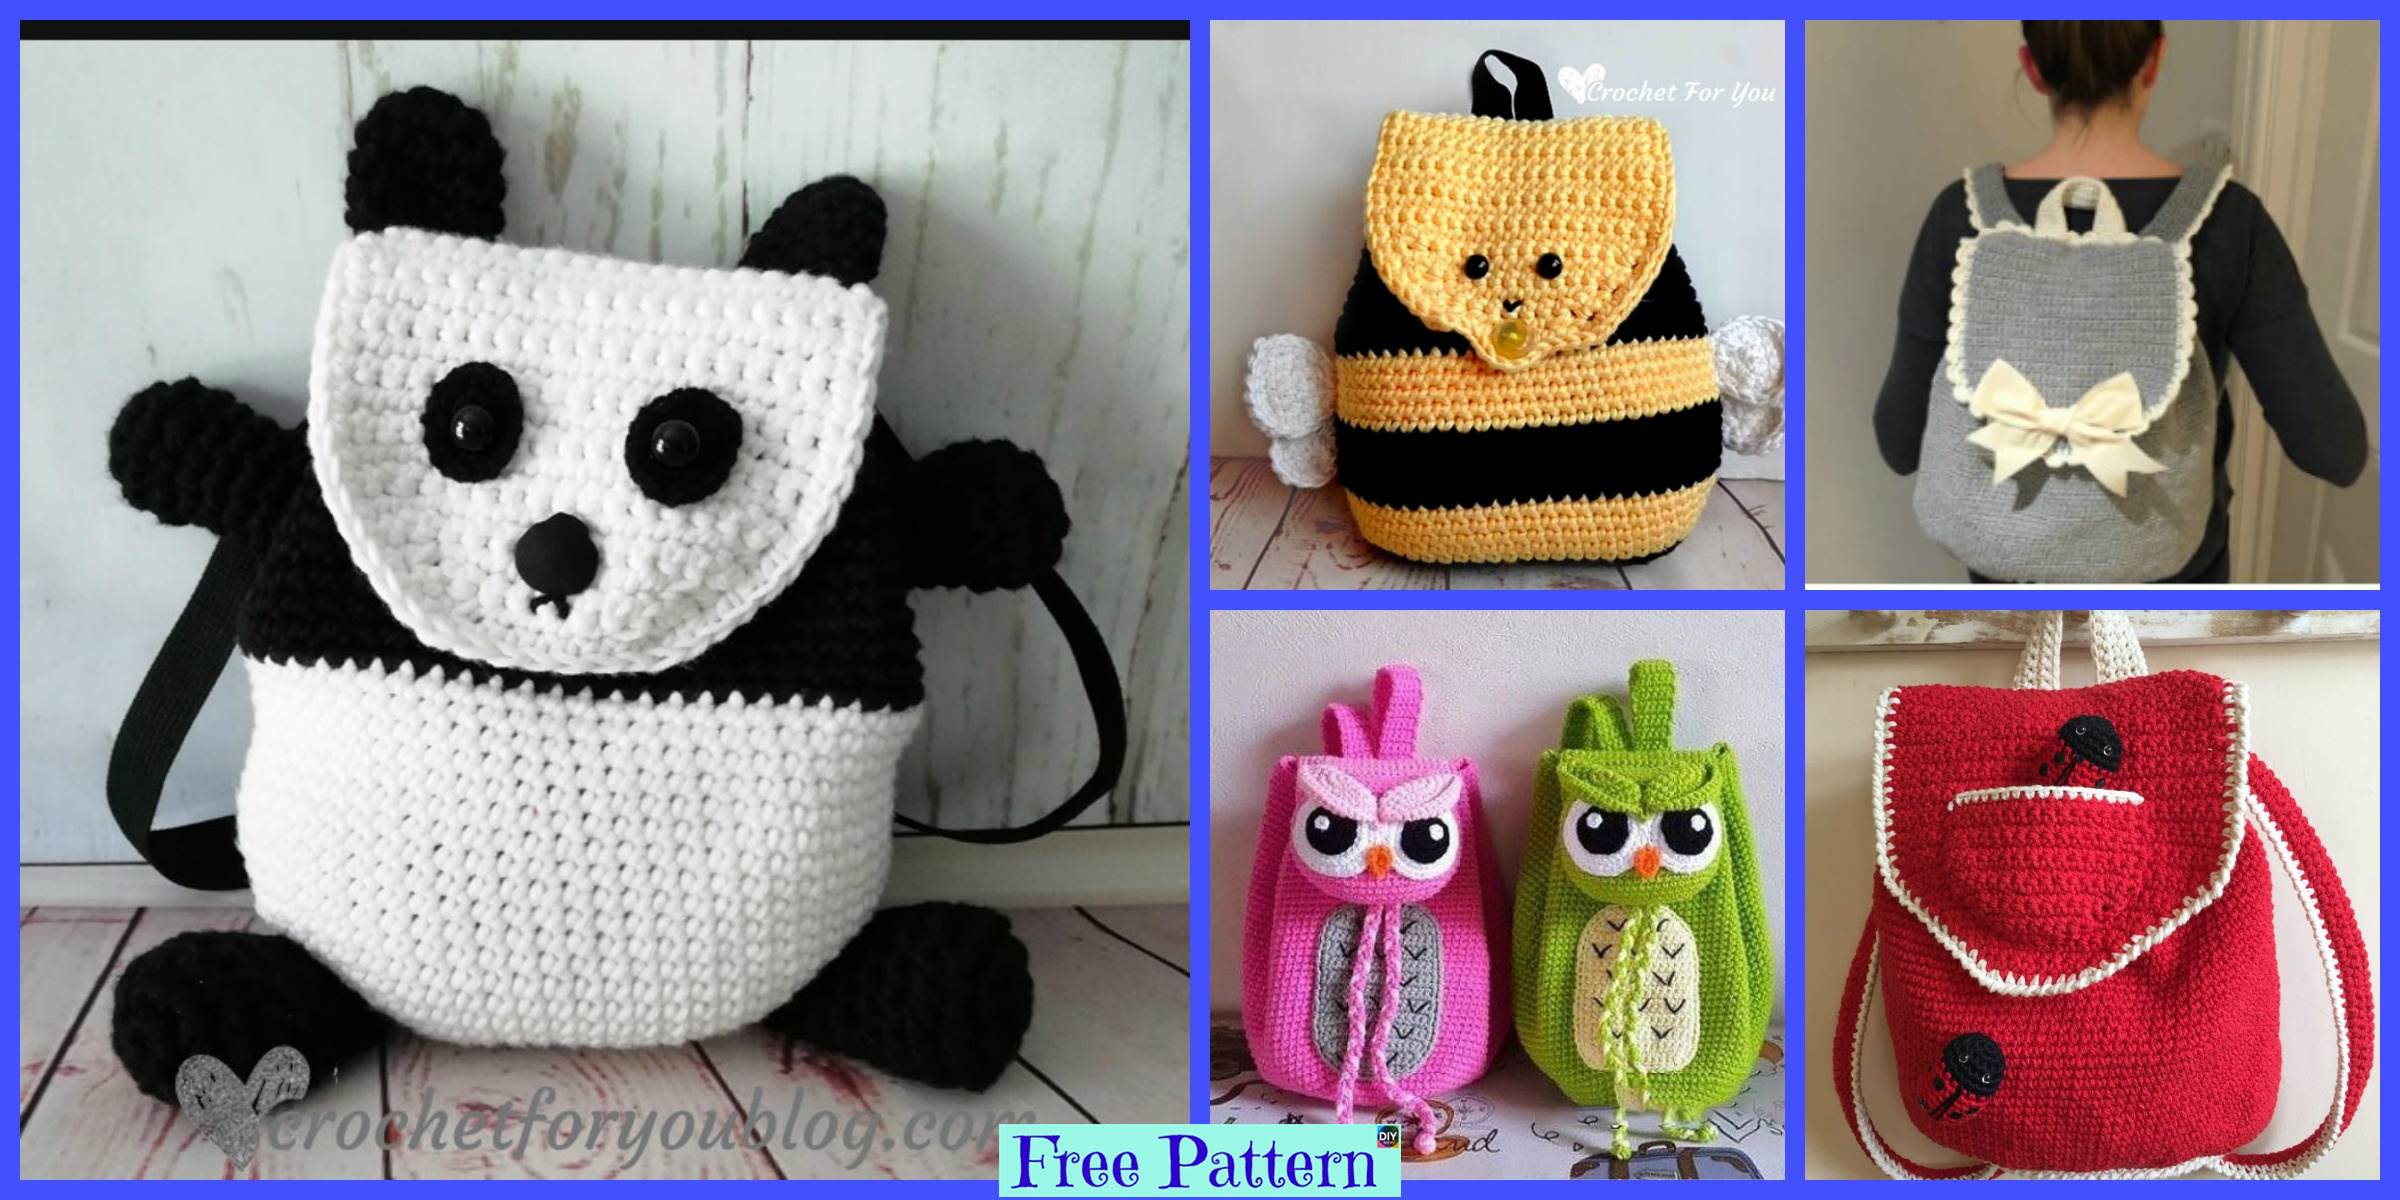 Cute Crochet Backpacks – Free Patterns